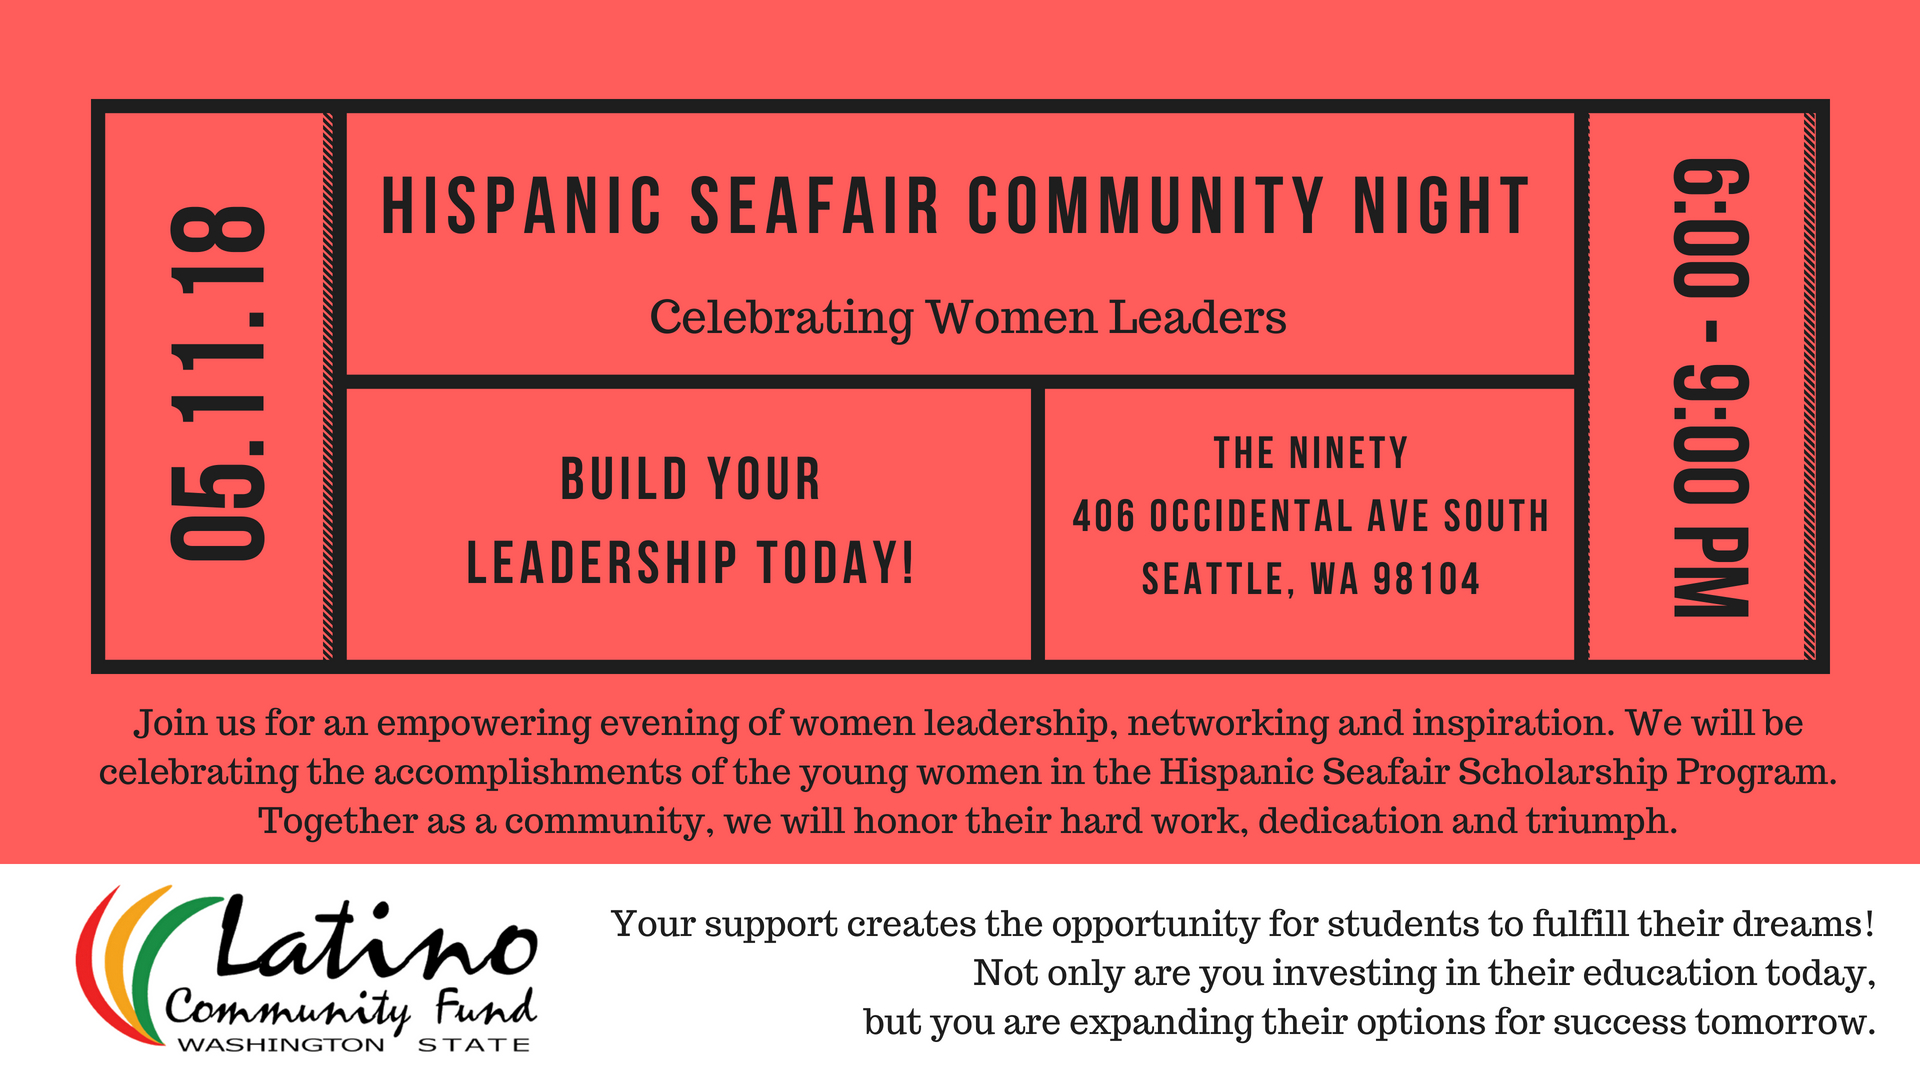 Latinos_in_Tech_Mixer_May_in_celebration_of_Hispanic_Seafair_Women_Leadership.jpg